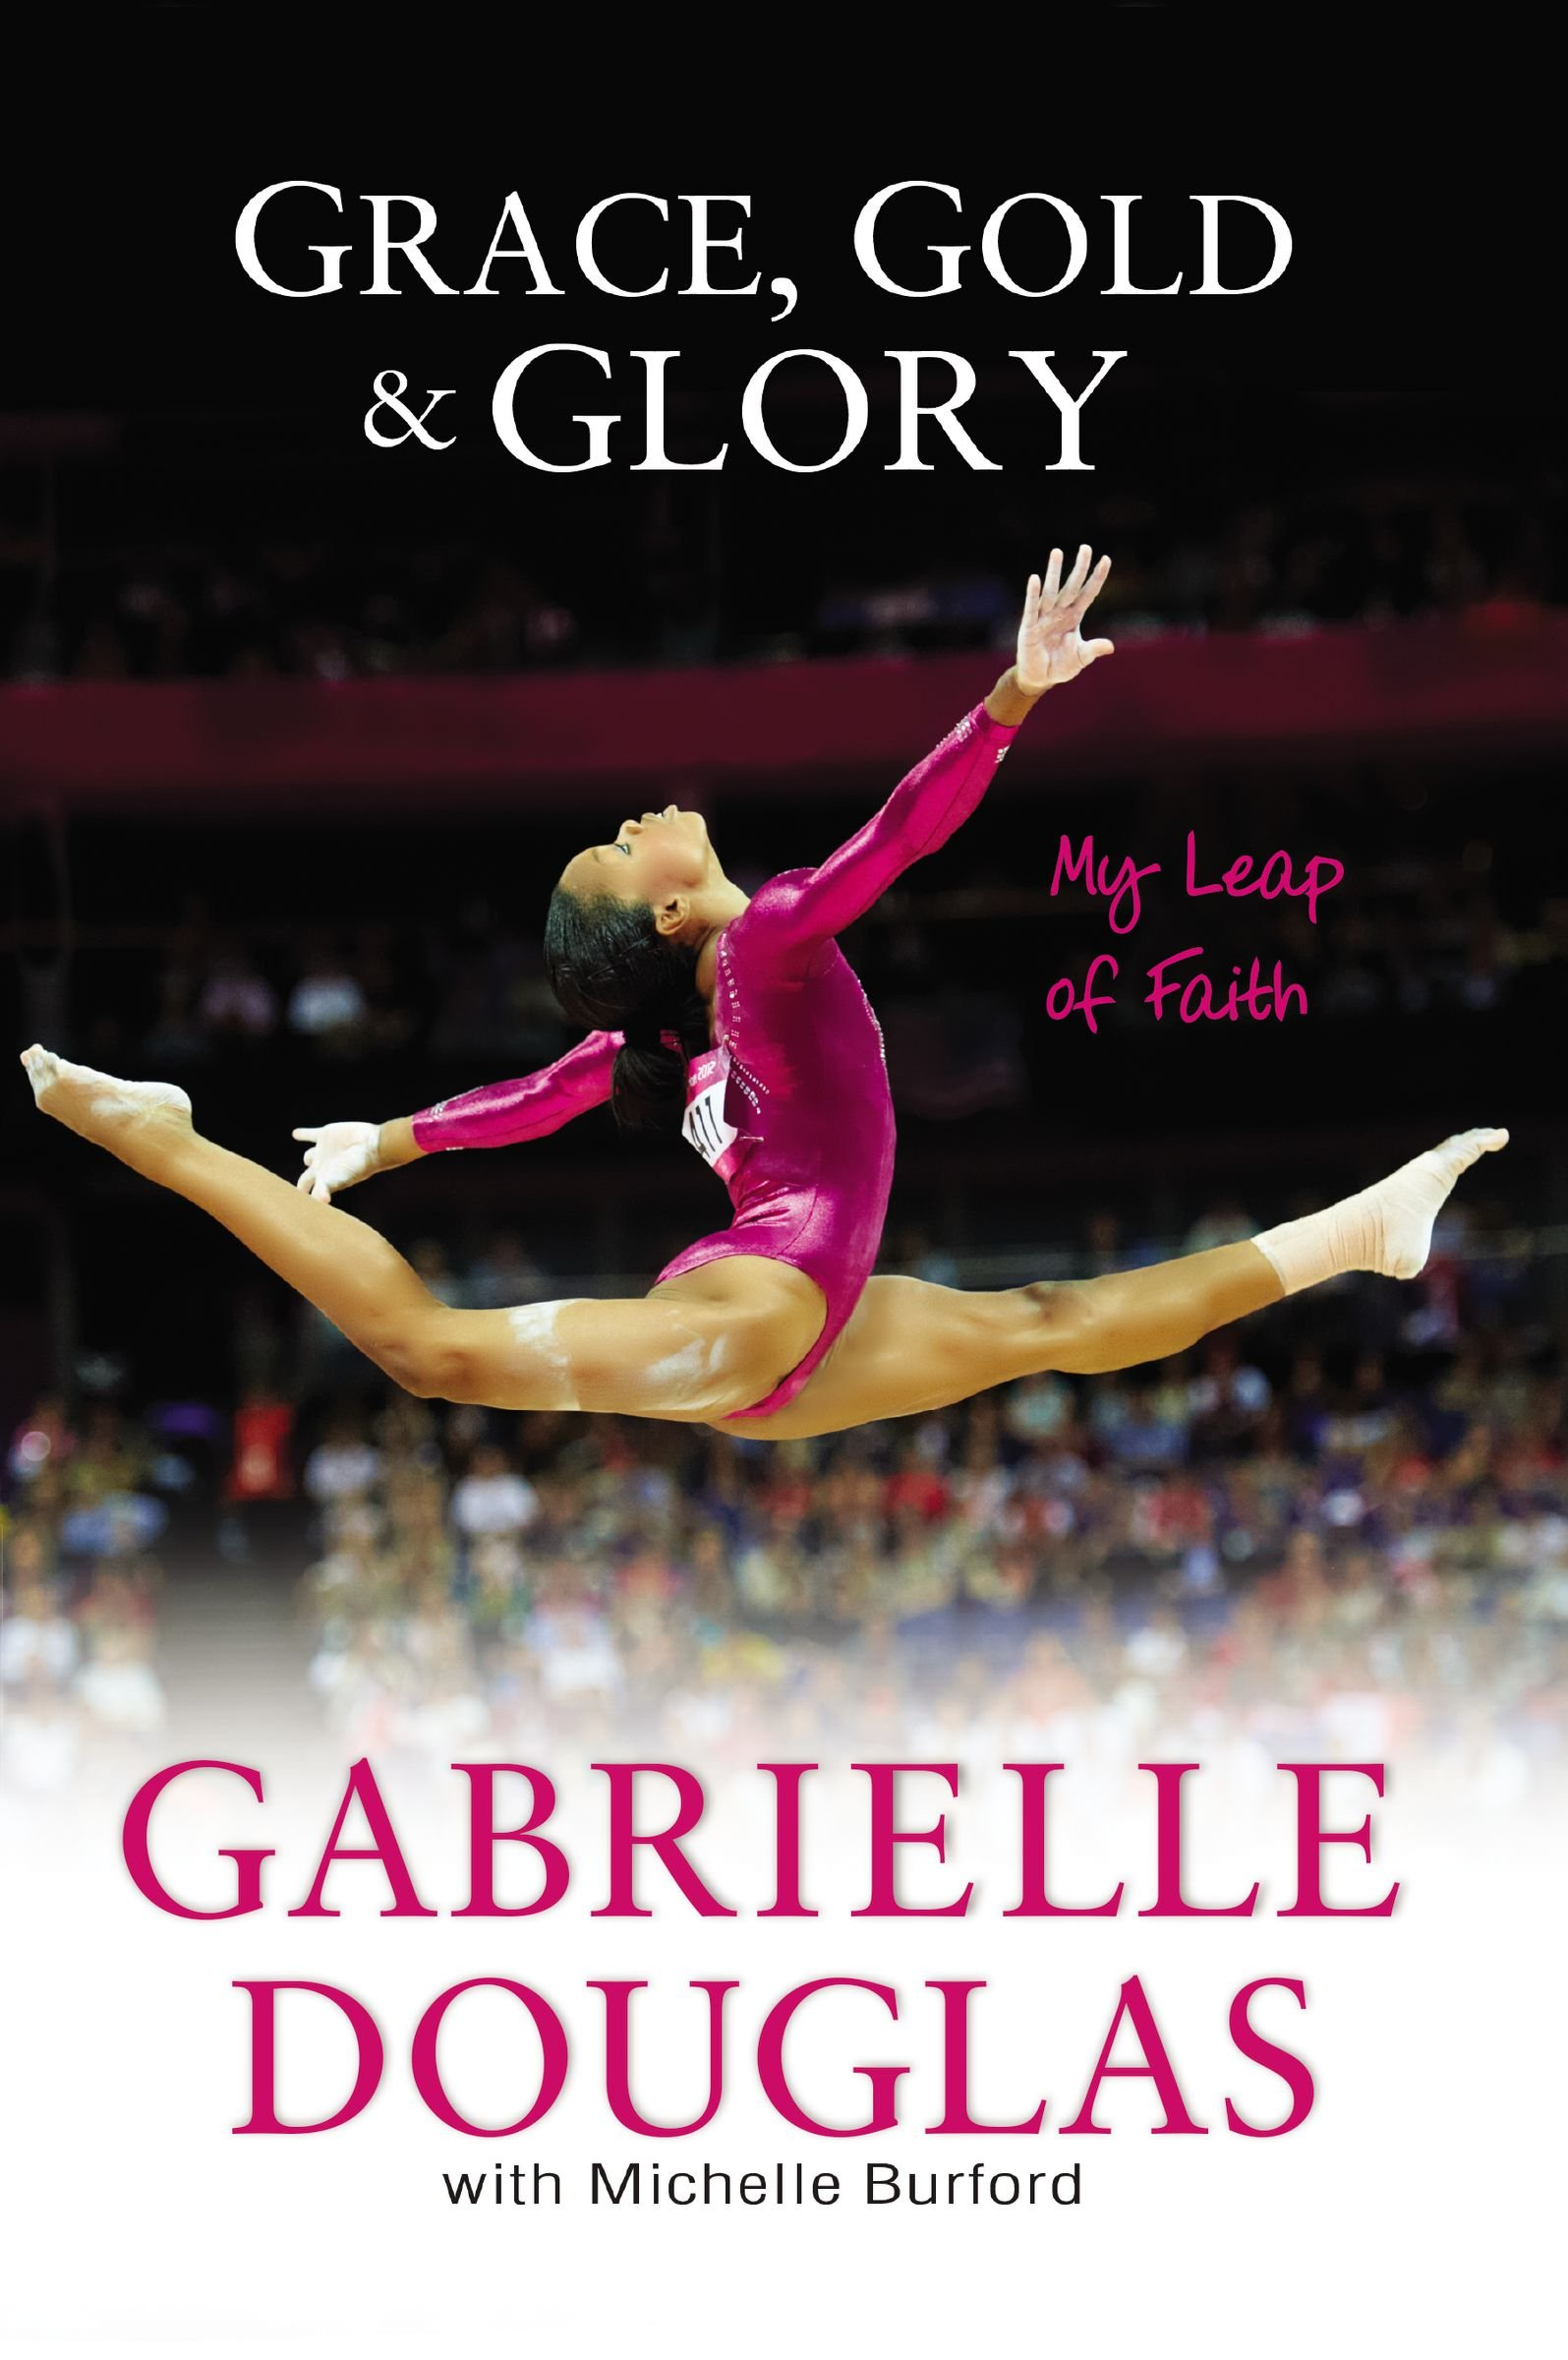 Grace, Gold, and Glory My Leap of Faith - Gabrielle Douglas w/Michelle Burford